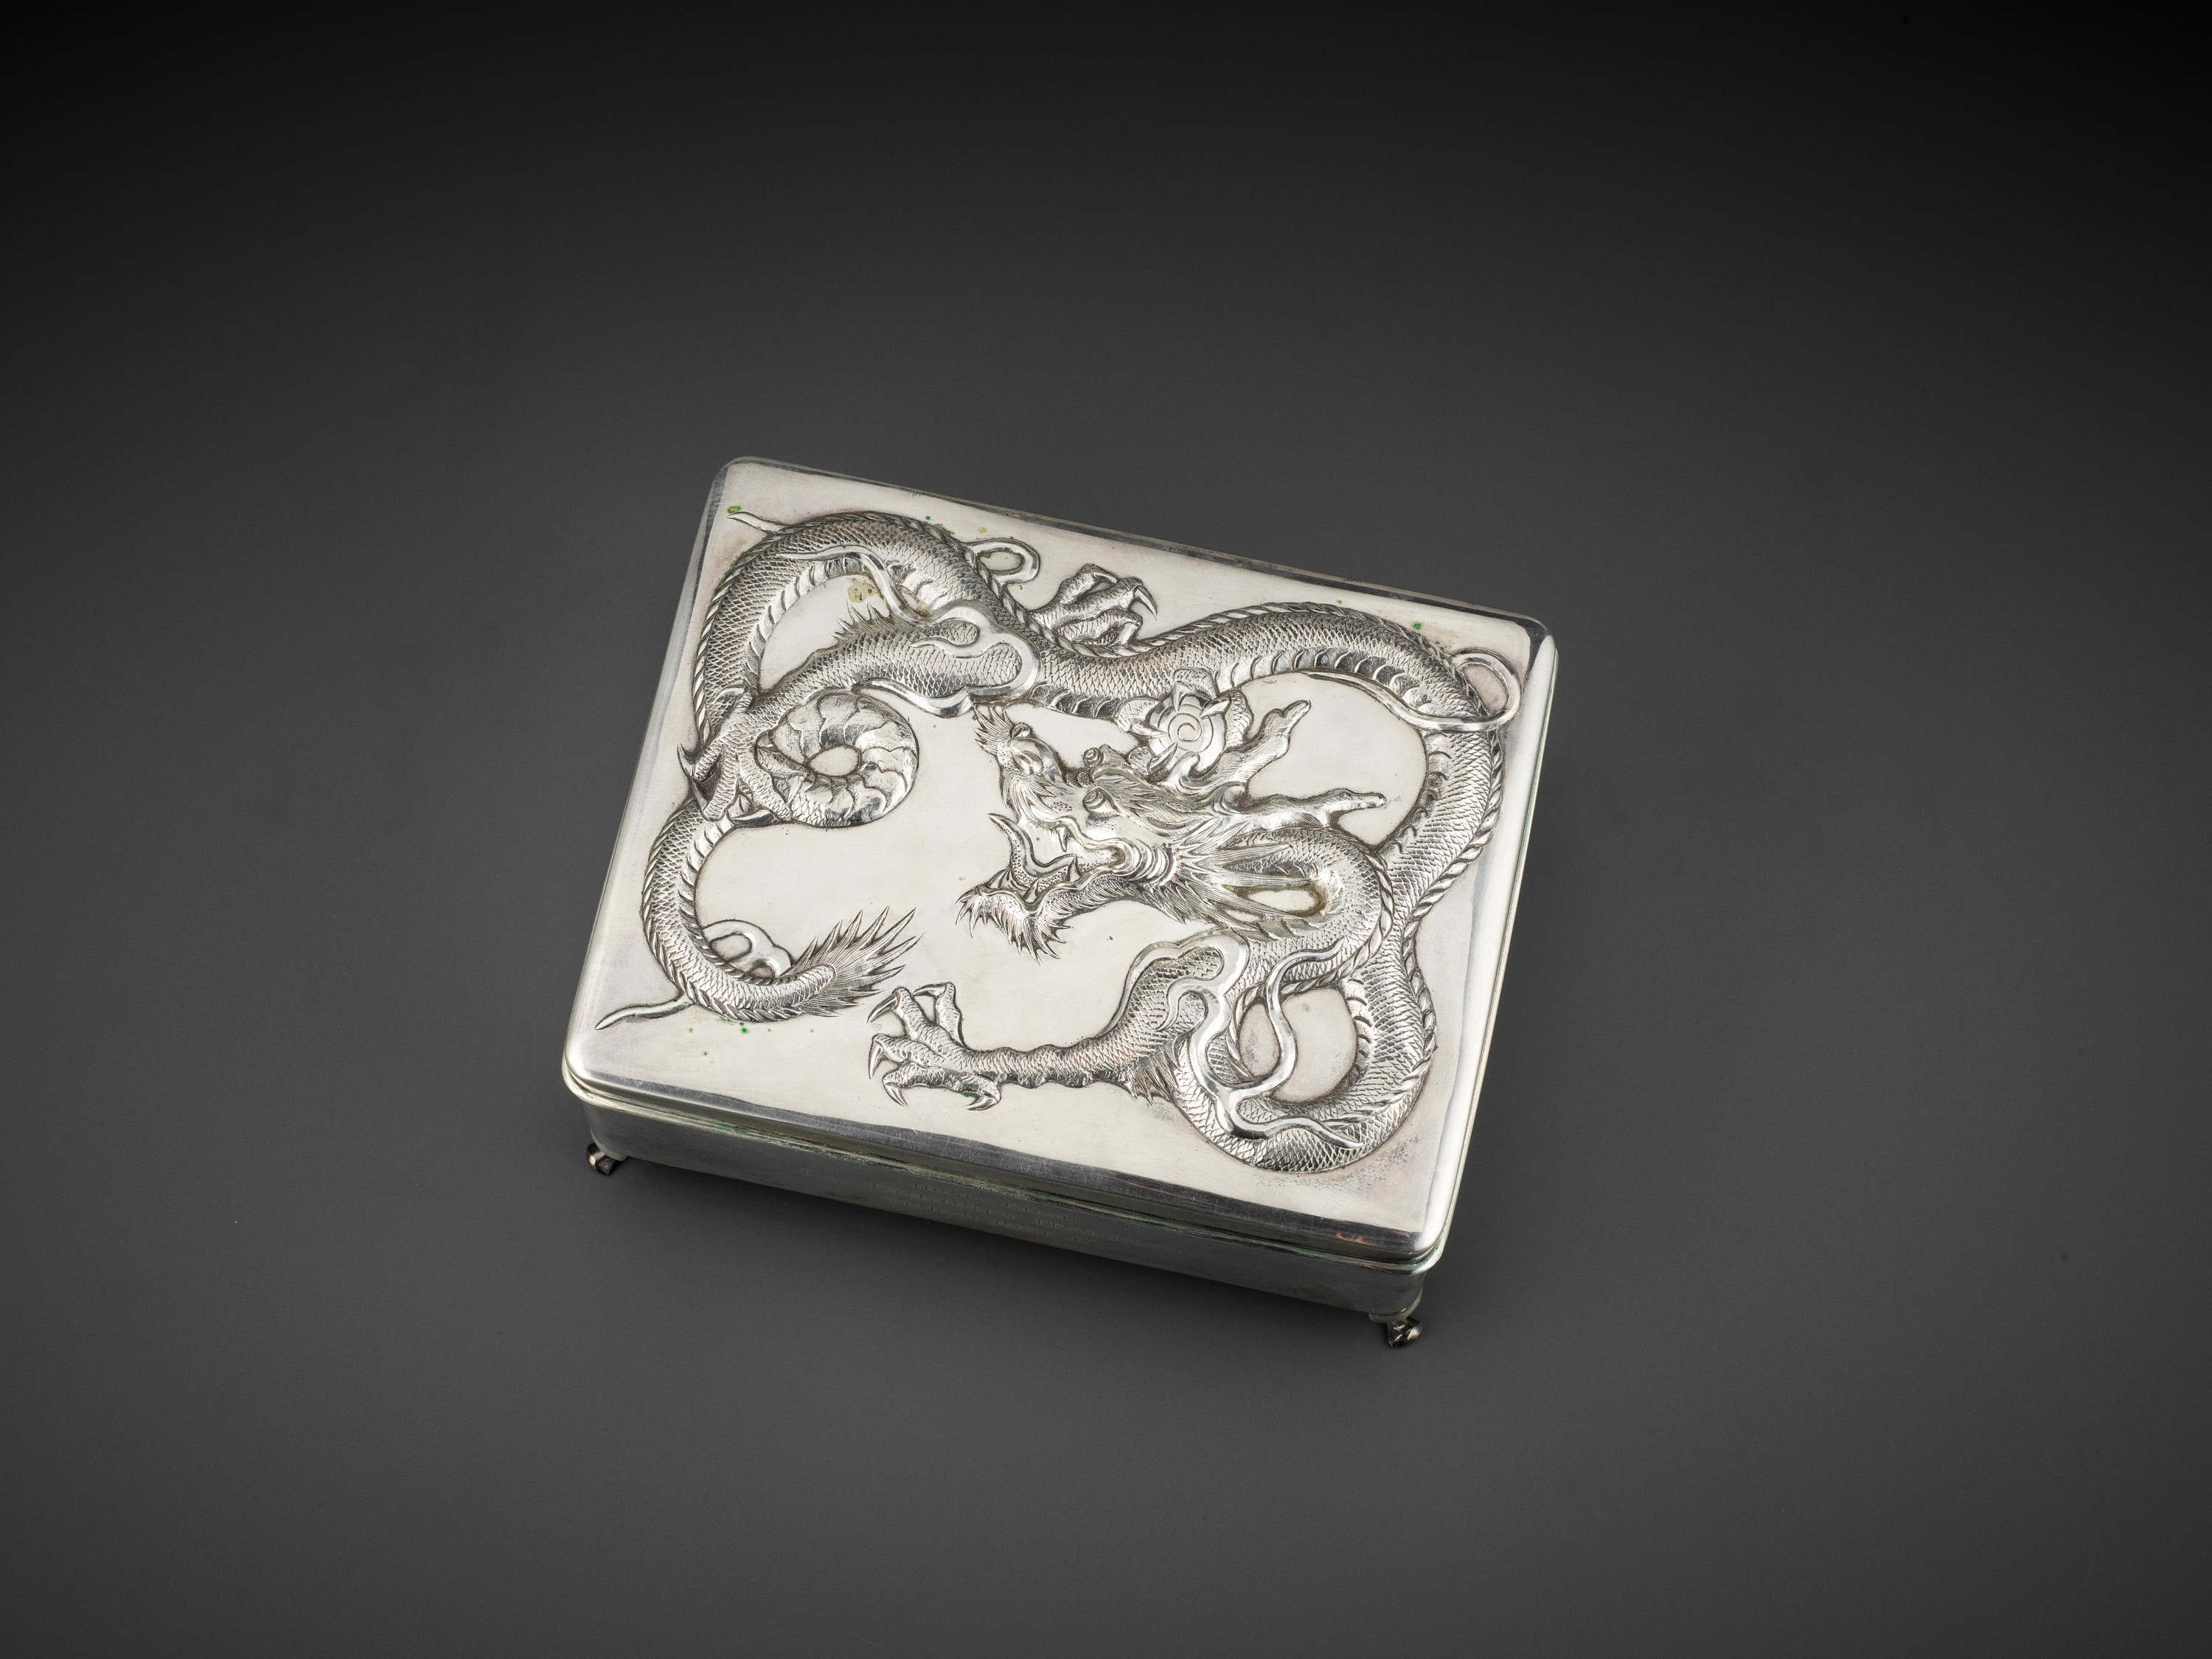 A SILVER REPOUSSE 'DRAGON' BOX AND COVER, WANG HING, LATE QING TO REPUBLIC